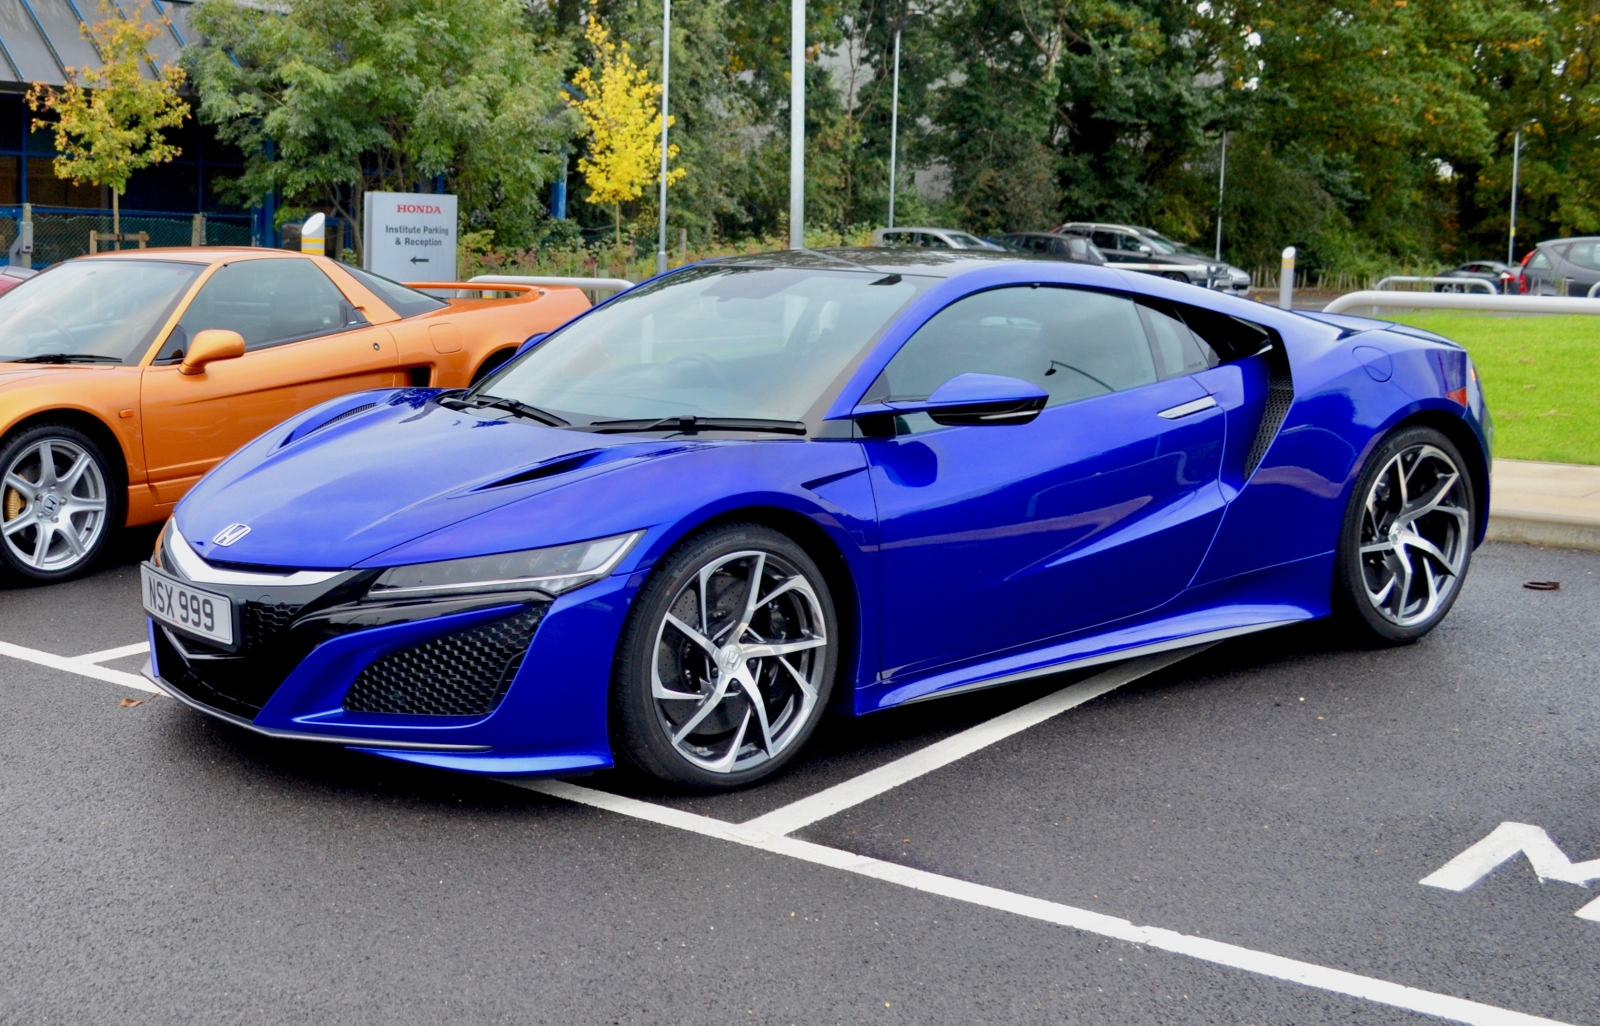 honda nsx review hybrid supercar takes on mclaren and audi